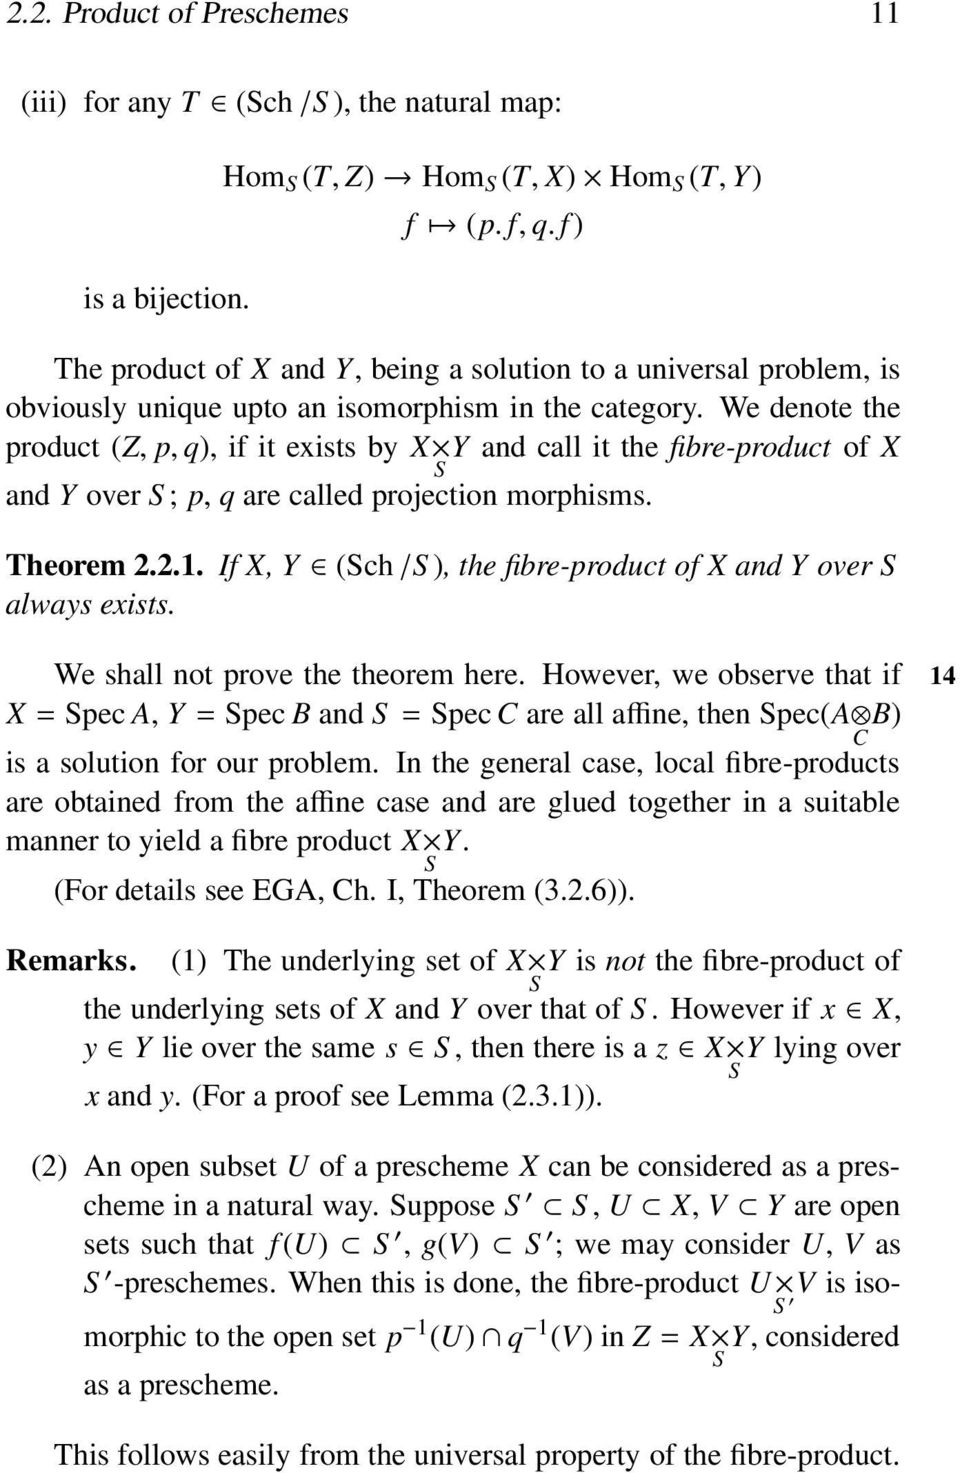 We denote the product (Z, p, q), if it exists by X Y and call it the fibre-product of X and Y over ; p, q are called projection morphisms. Theorem 2.2.1.